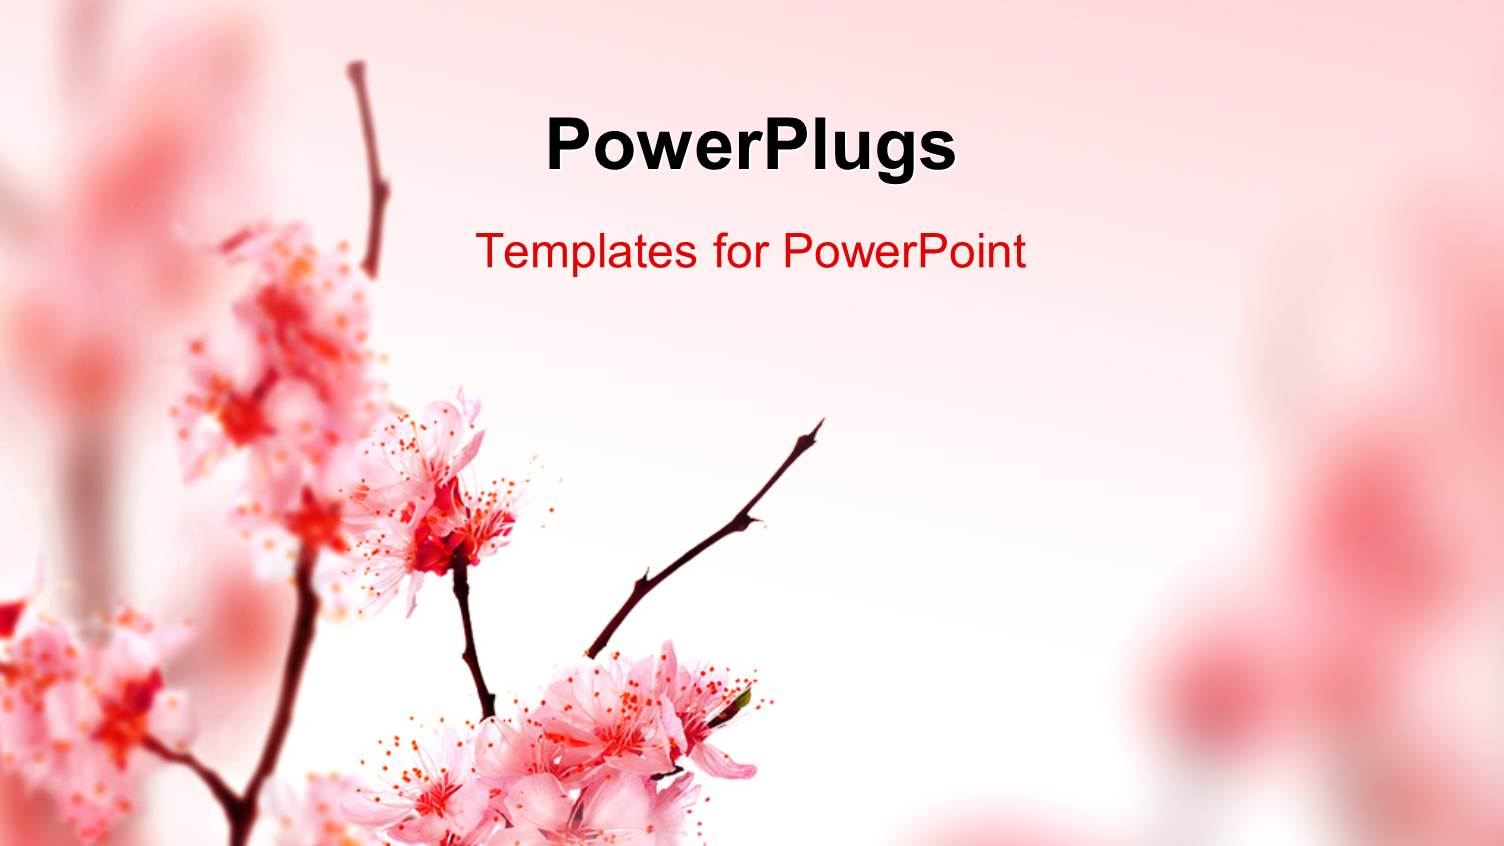 Blossom PowerPoint Templates | CrystalGraphics